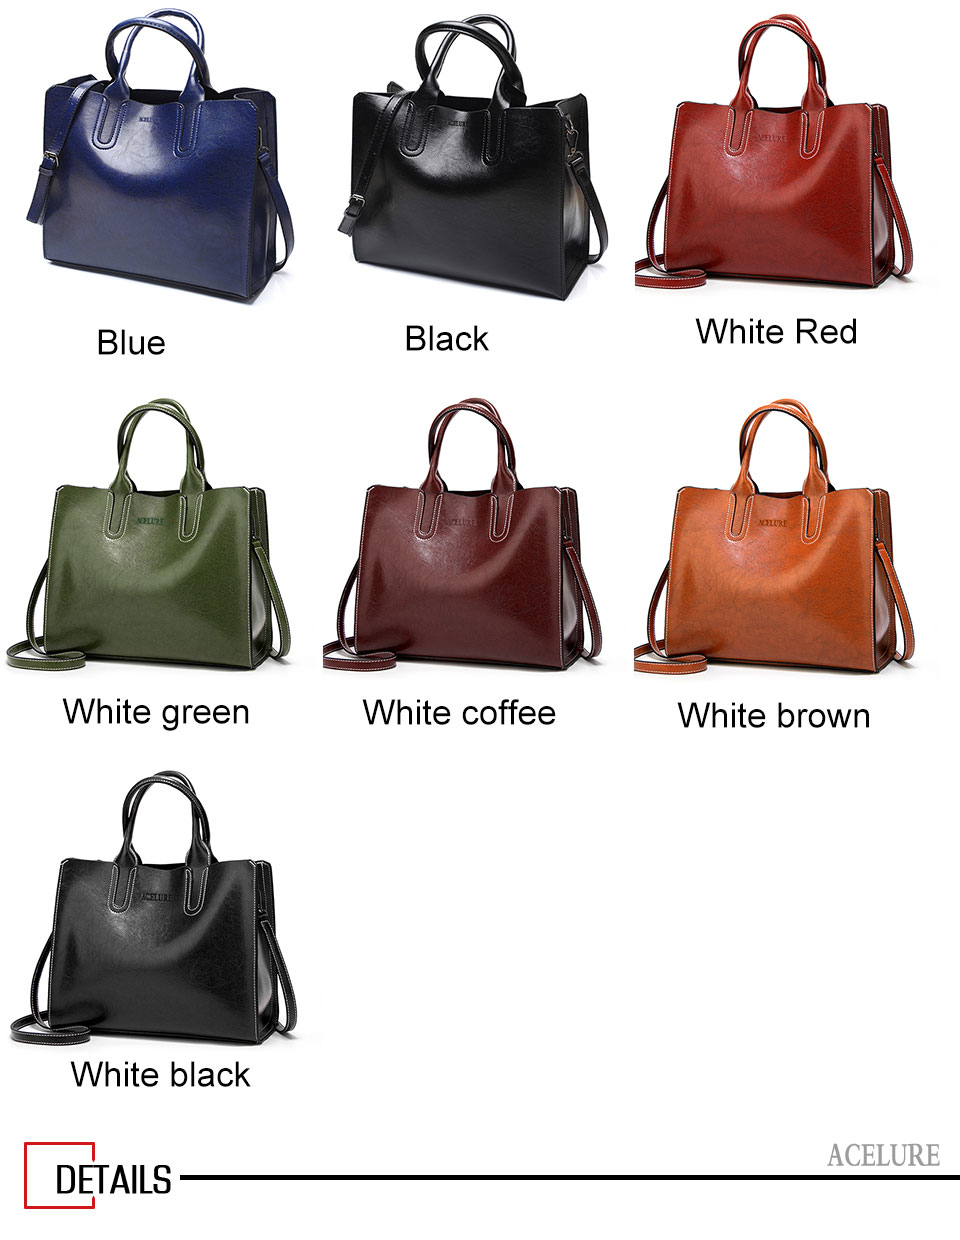 ACELURE Leather Handbags Big Women Bag High Quality Casual Female Bags Trunk Tote Spanish Brand Shoulder Bag Ladies Large Bolsos 11